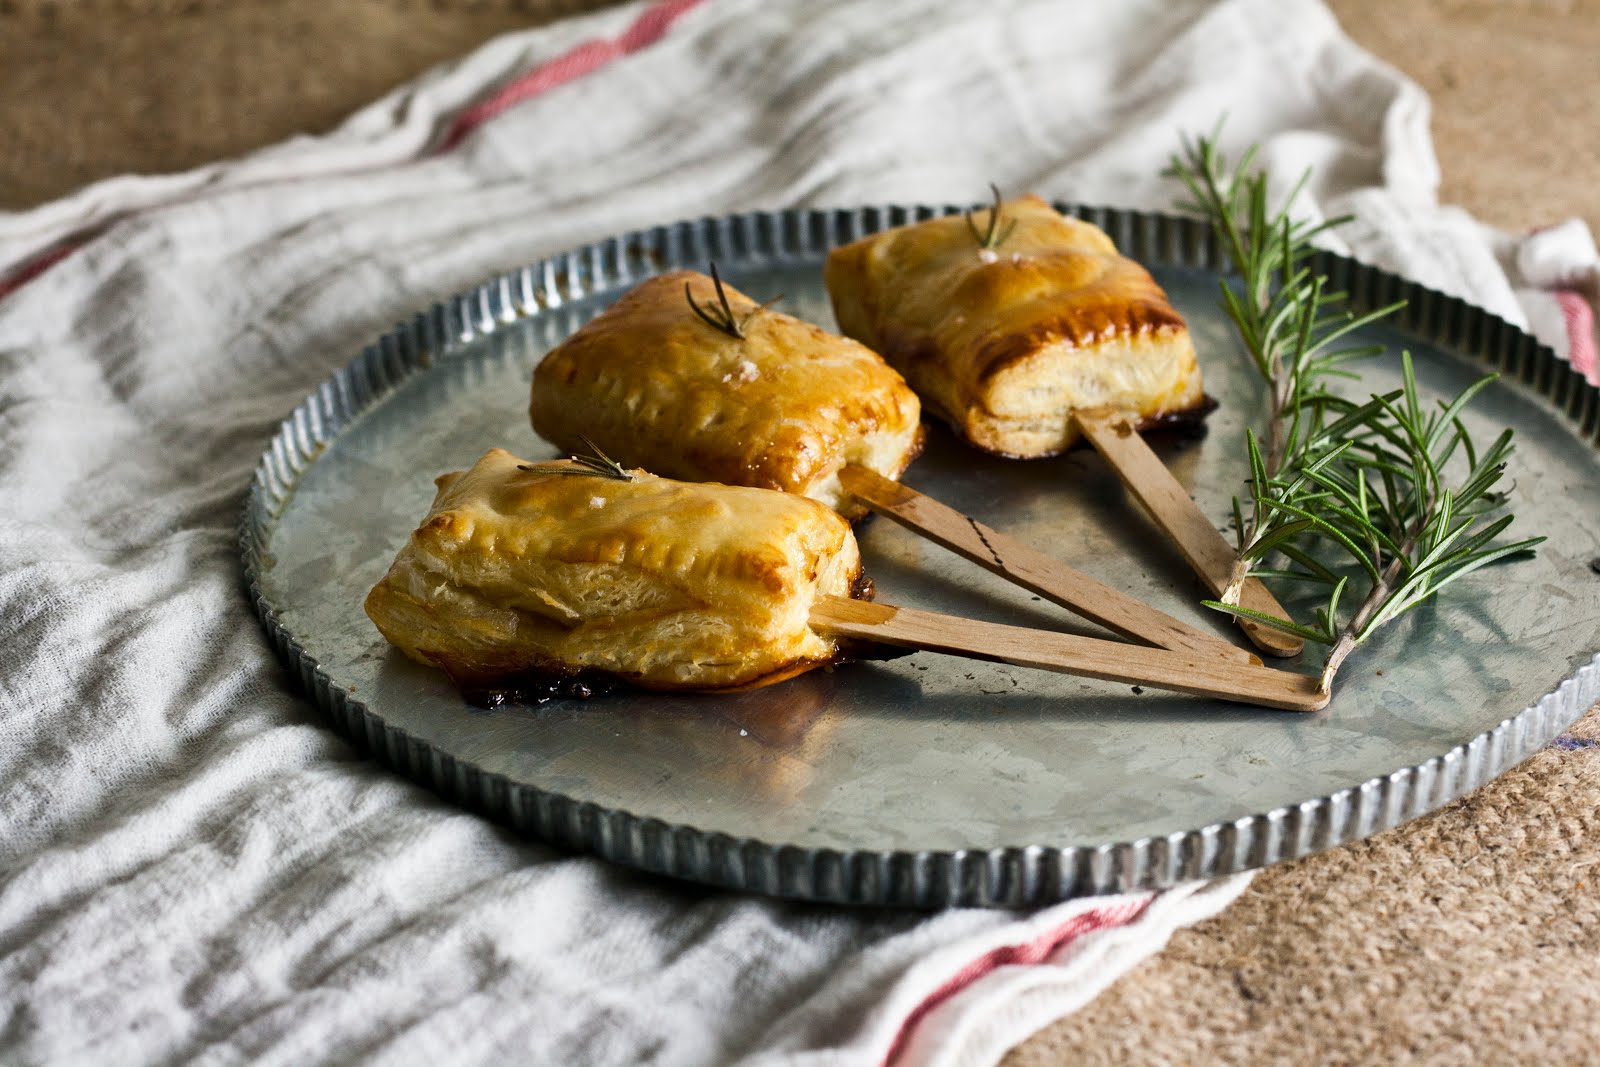 ... Blog in San Francisco: Bite-Sized Baked Brie with Rosemary and Honey